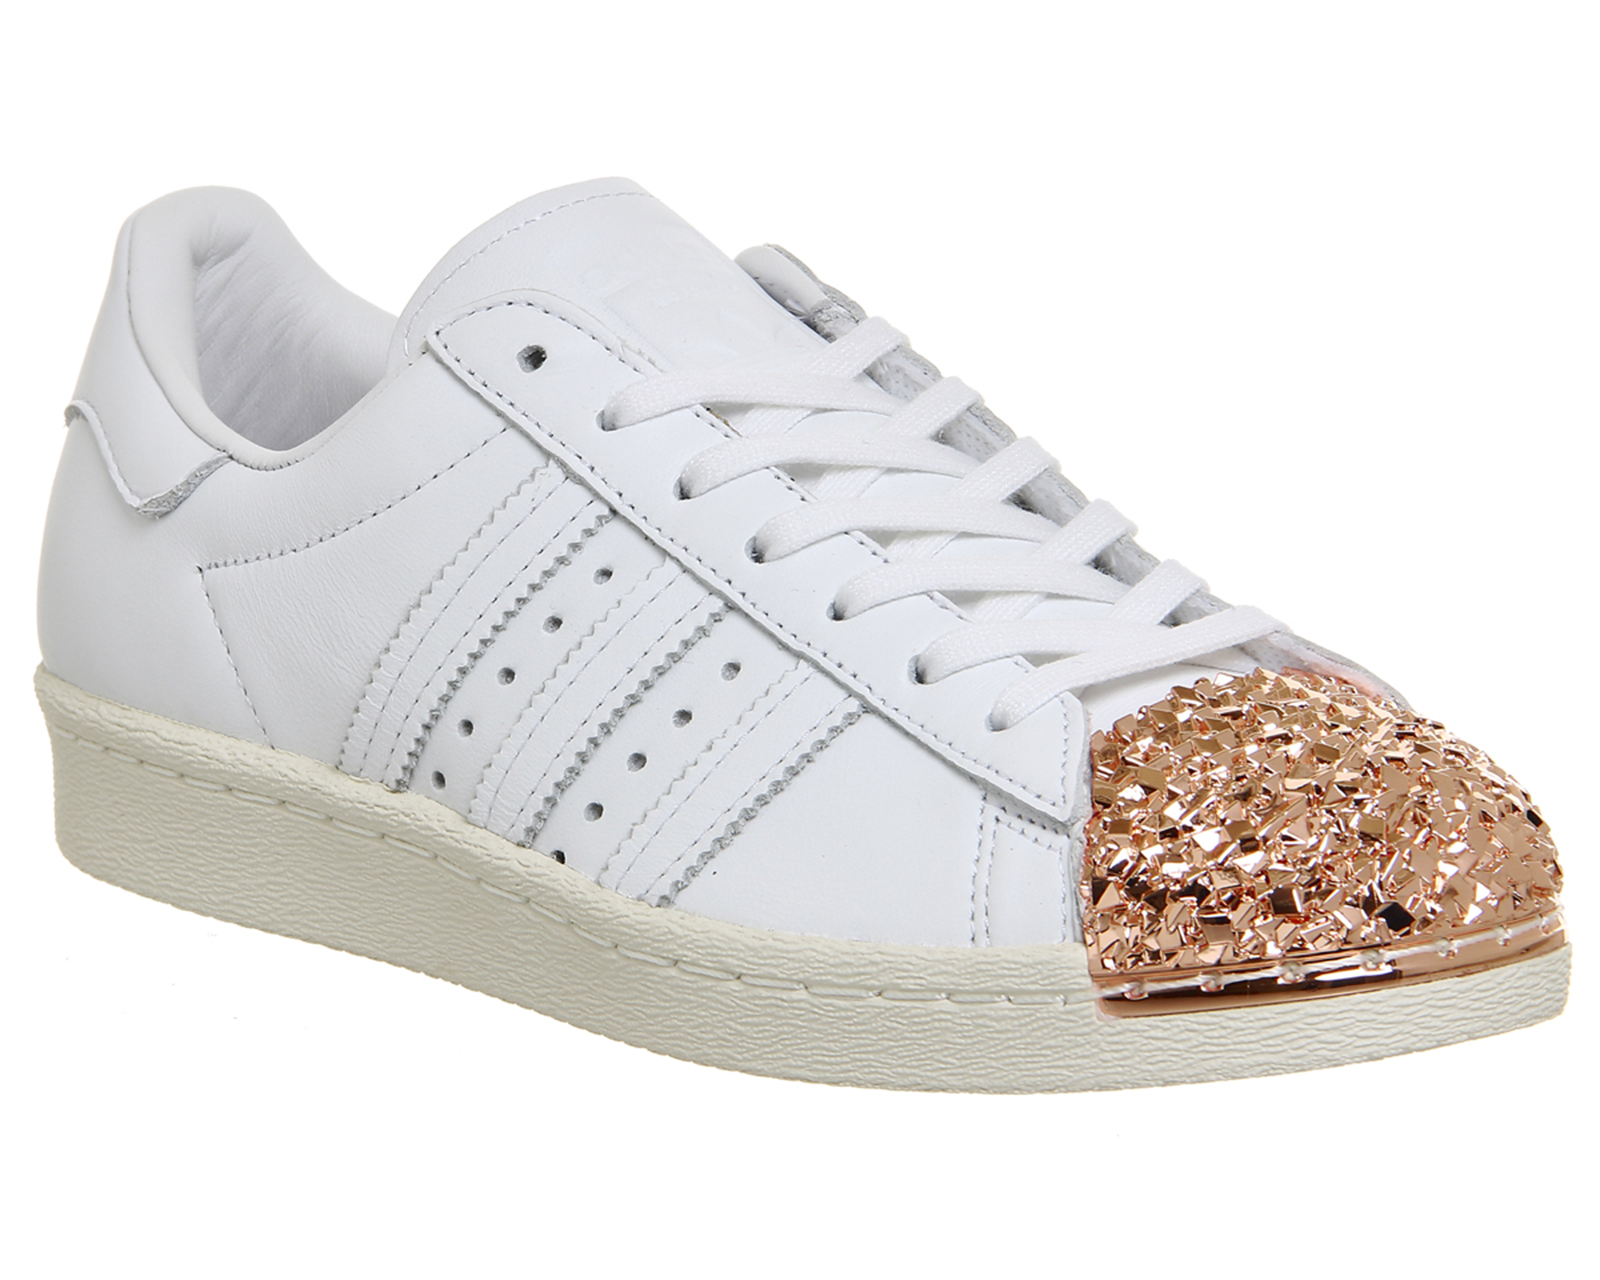 adidas Originals Women's Shoes Superstar, Black/White/Metallic Gold